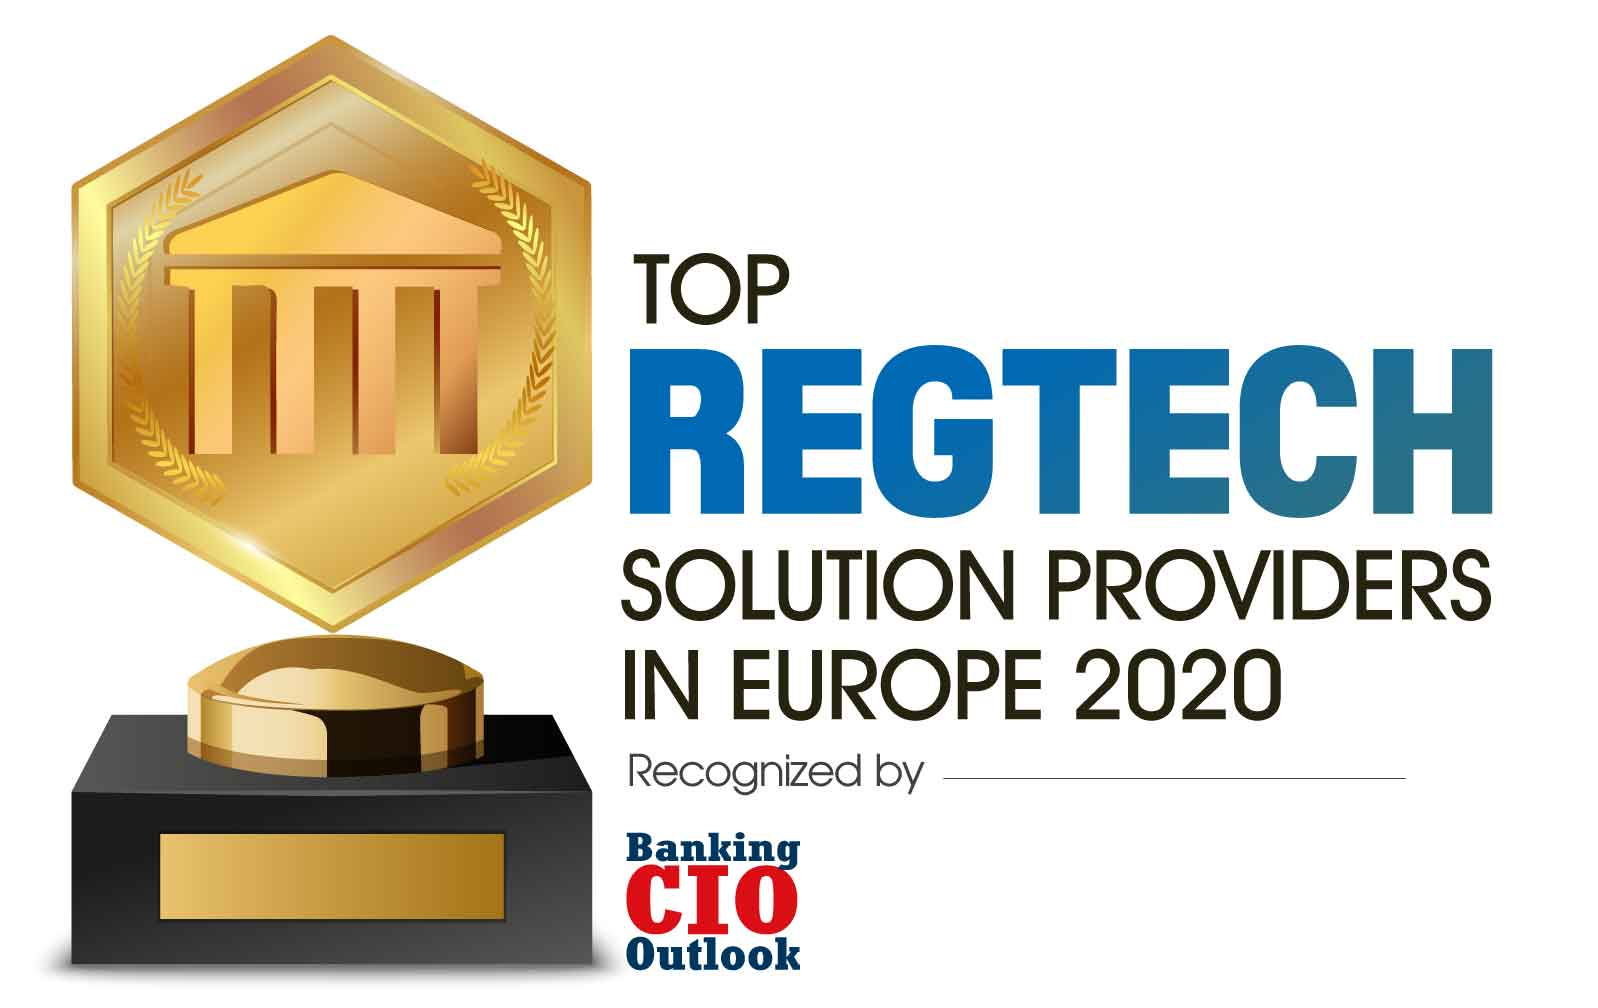 Top 10 Regtech Solution Companies in Europe - 2020